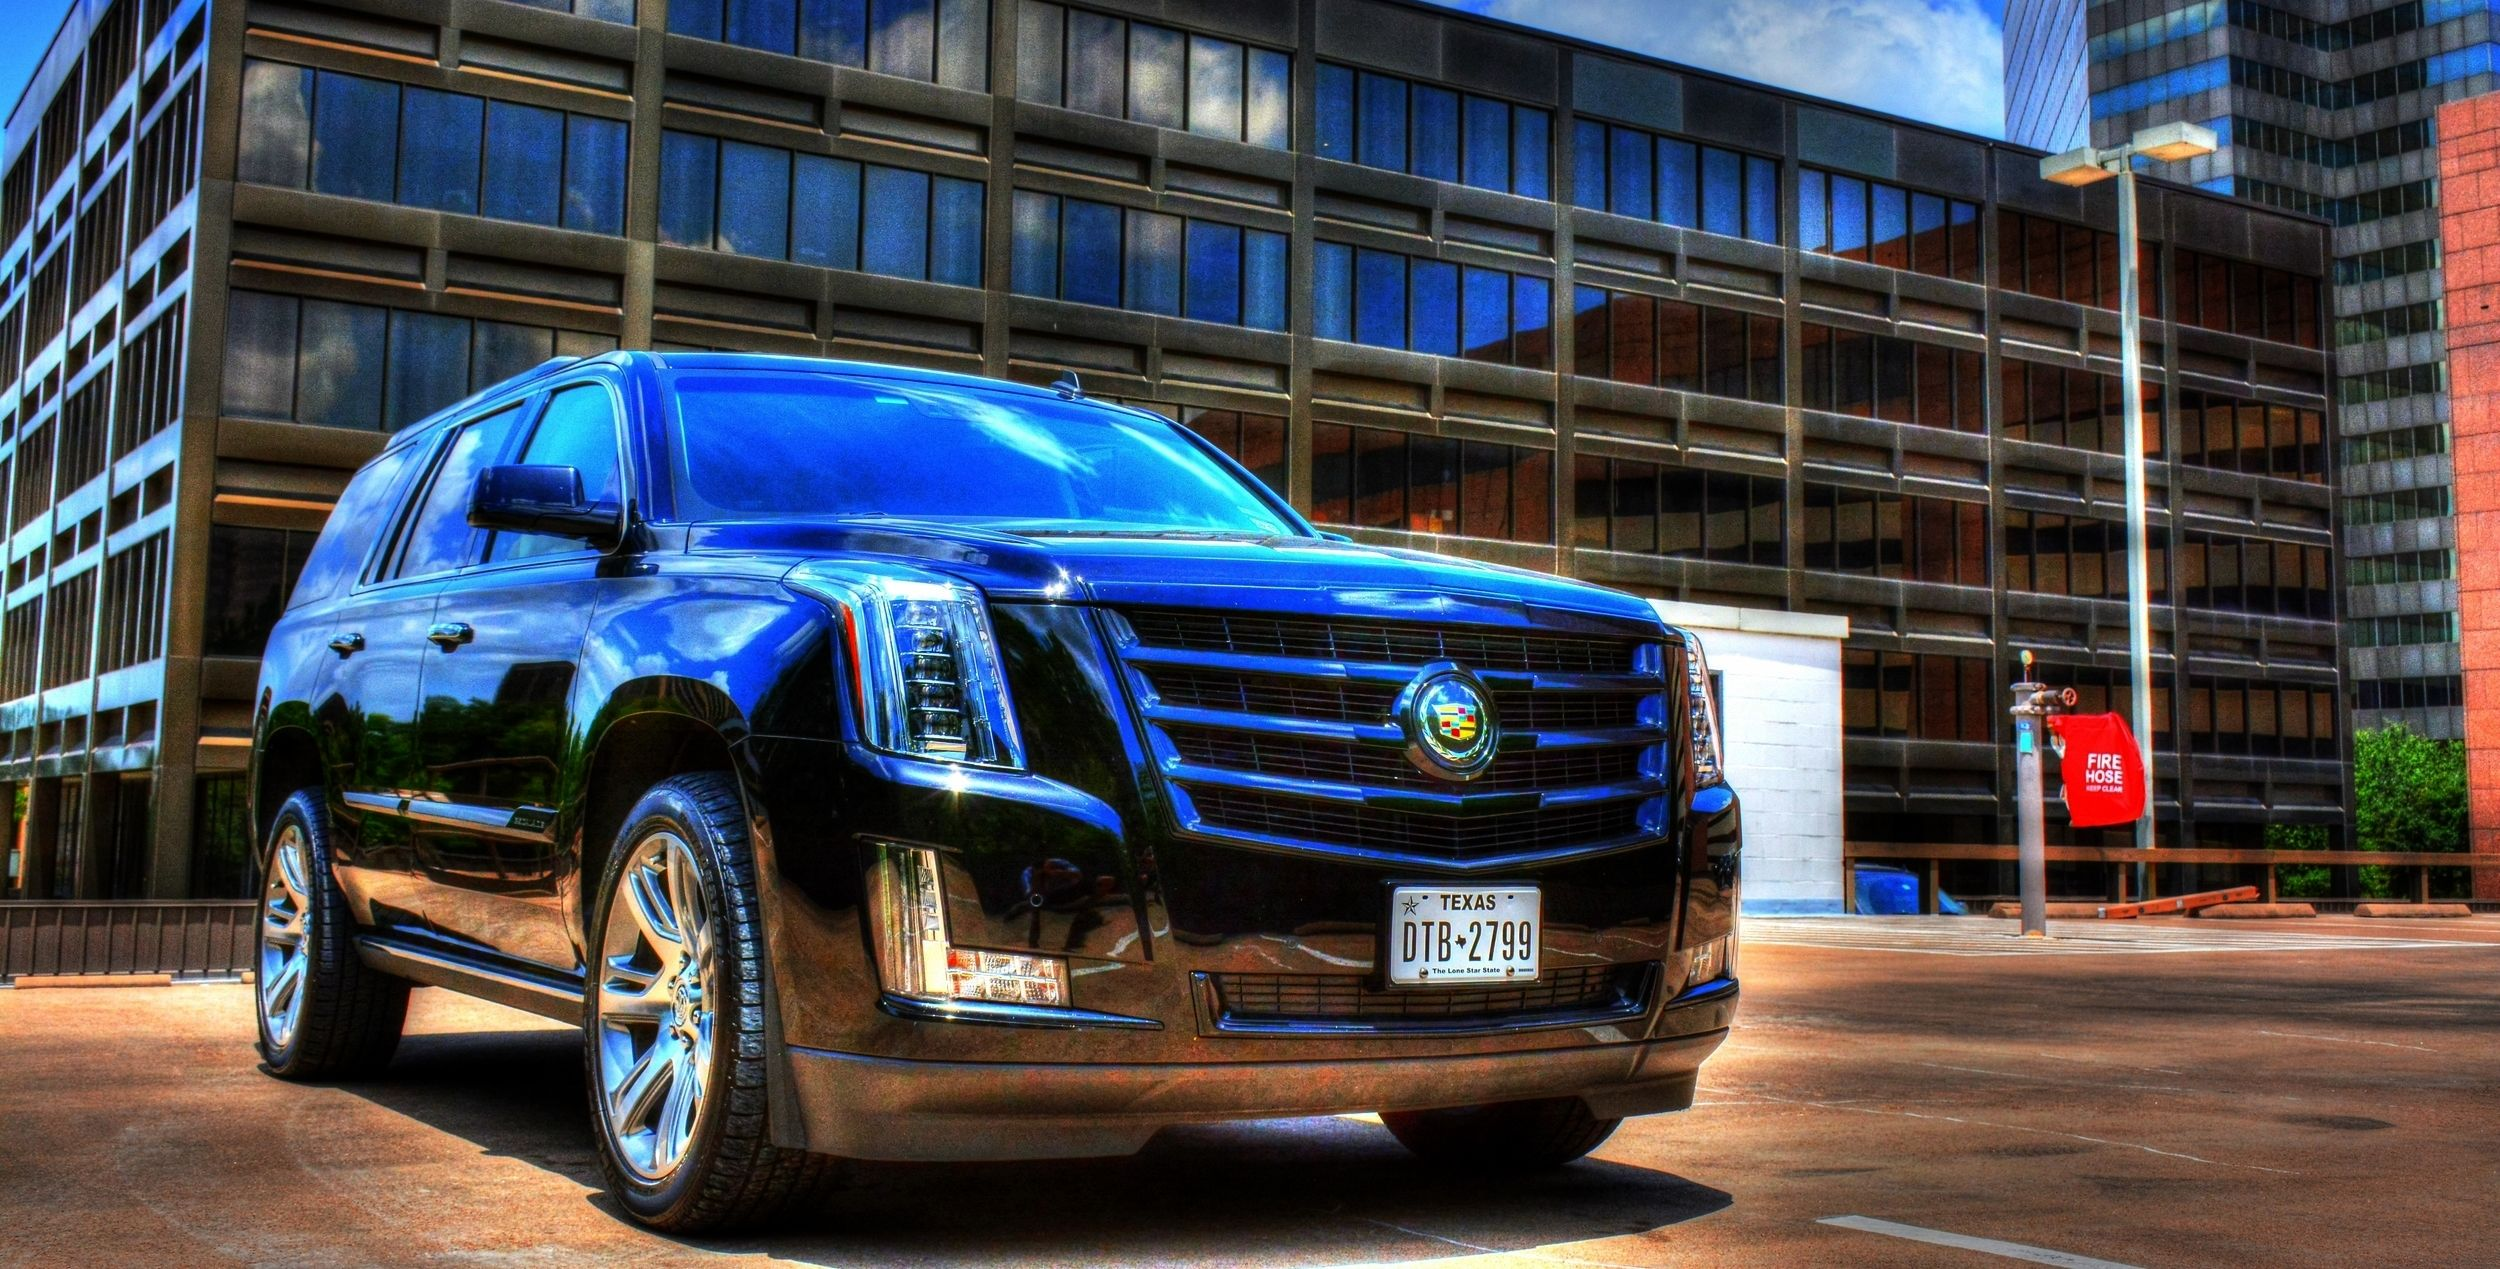 Rent A Luxury Suv For Any Occasion Or Event In Houston Tx Luxury Suv Suv Chauffeur Service